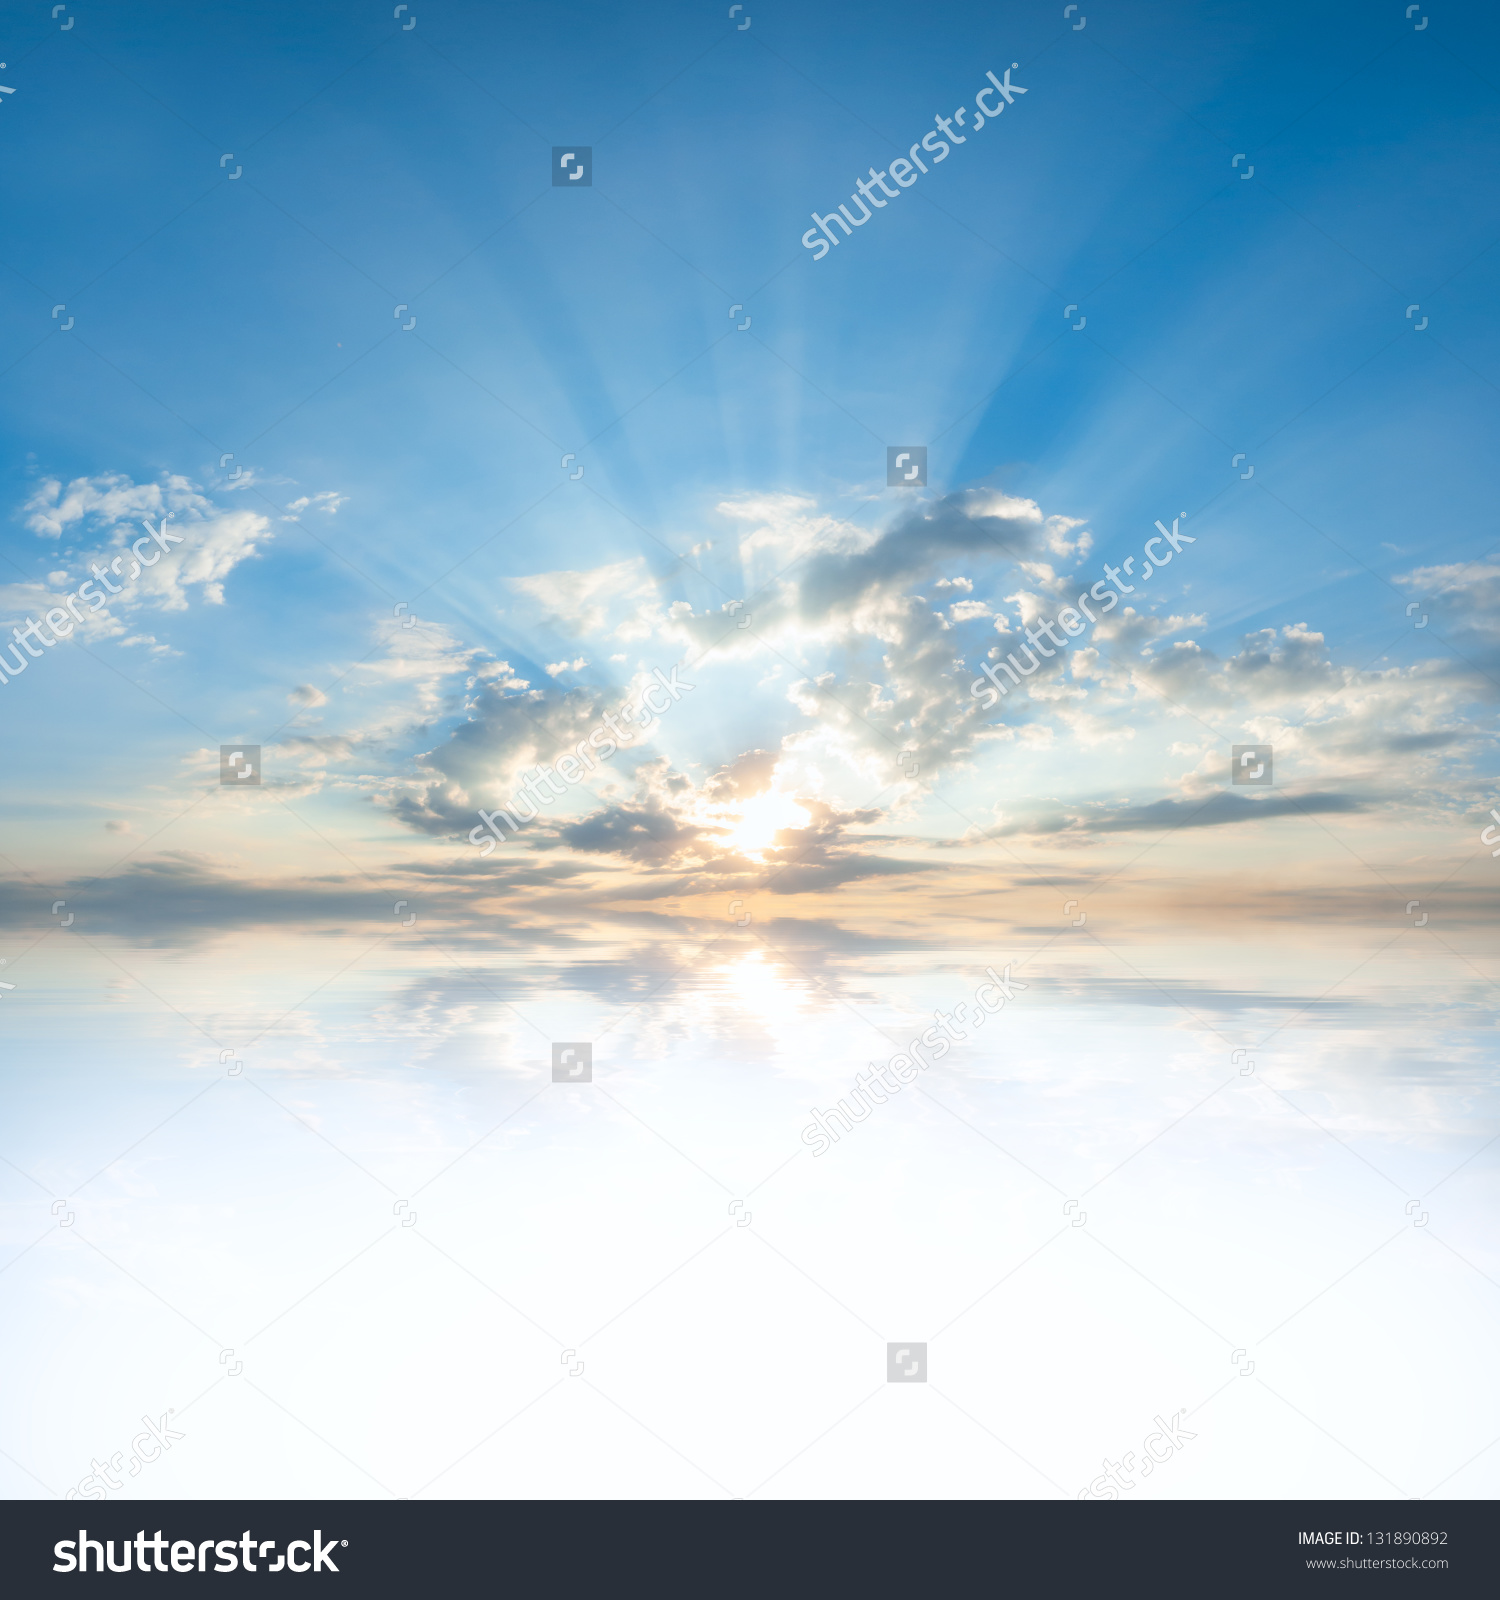 Blue Sky Clouds Sun Reflection Water Stock Photo 131890892.